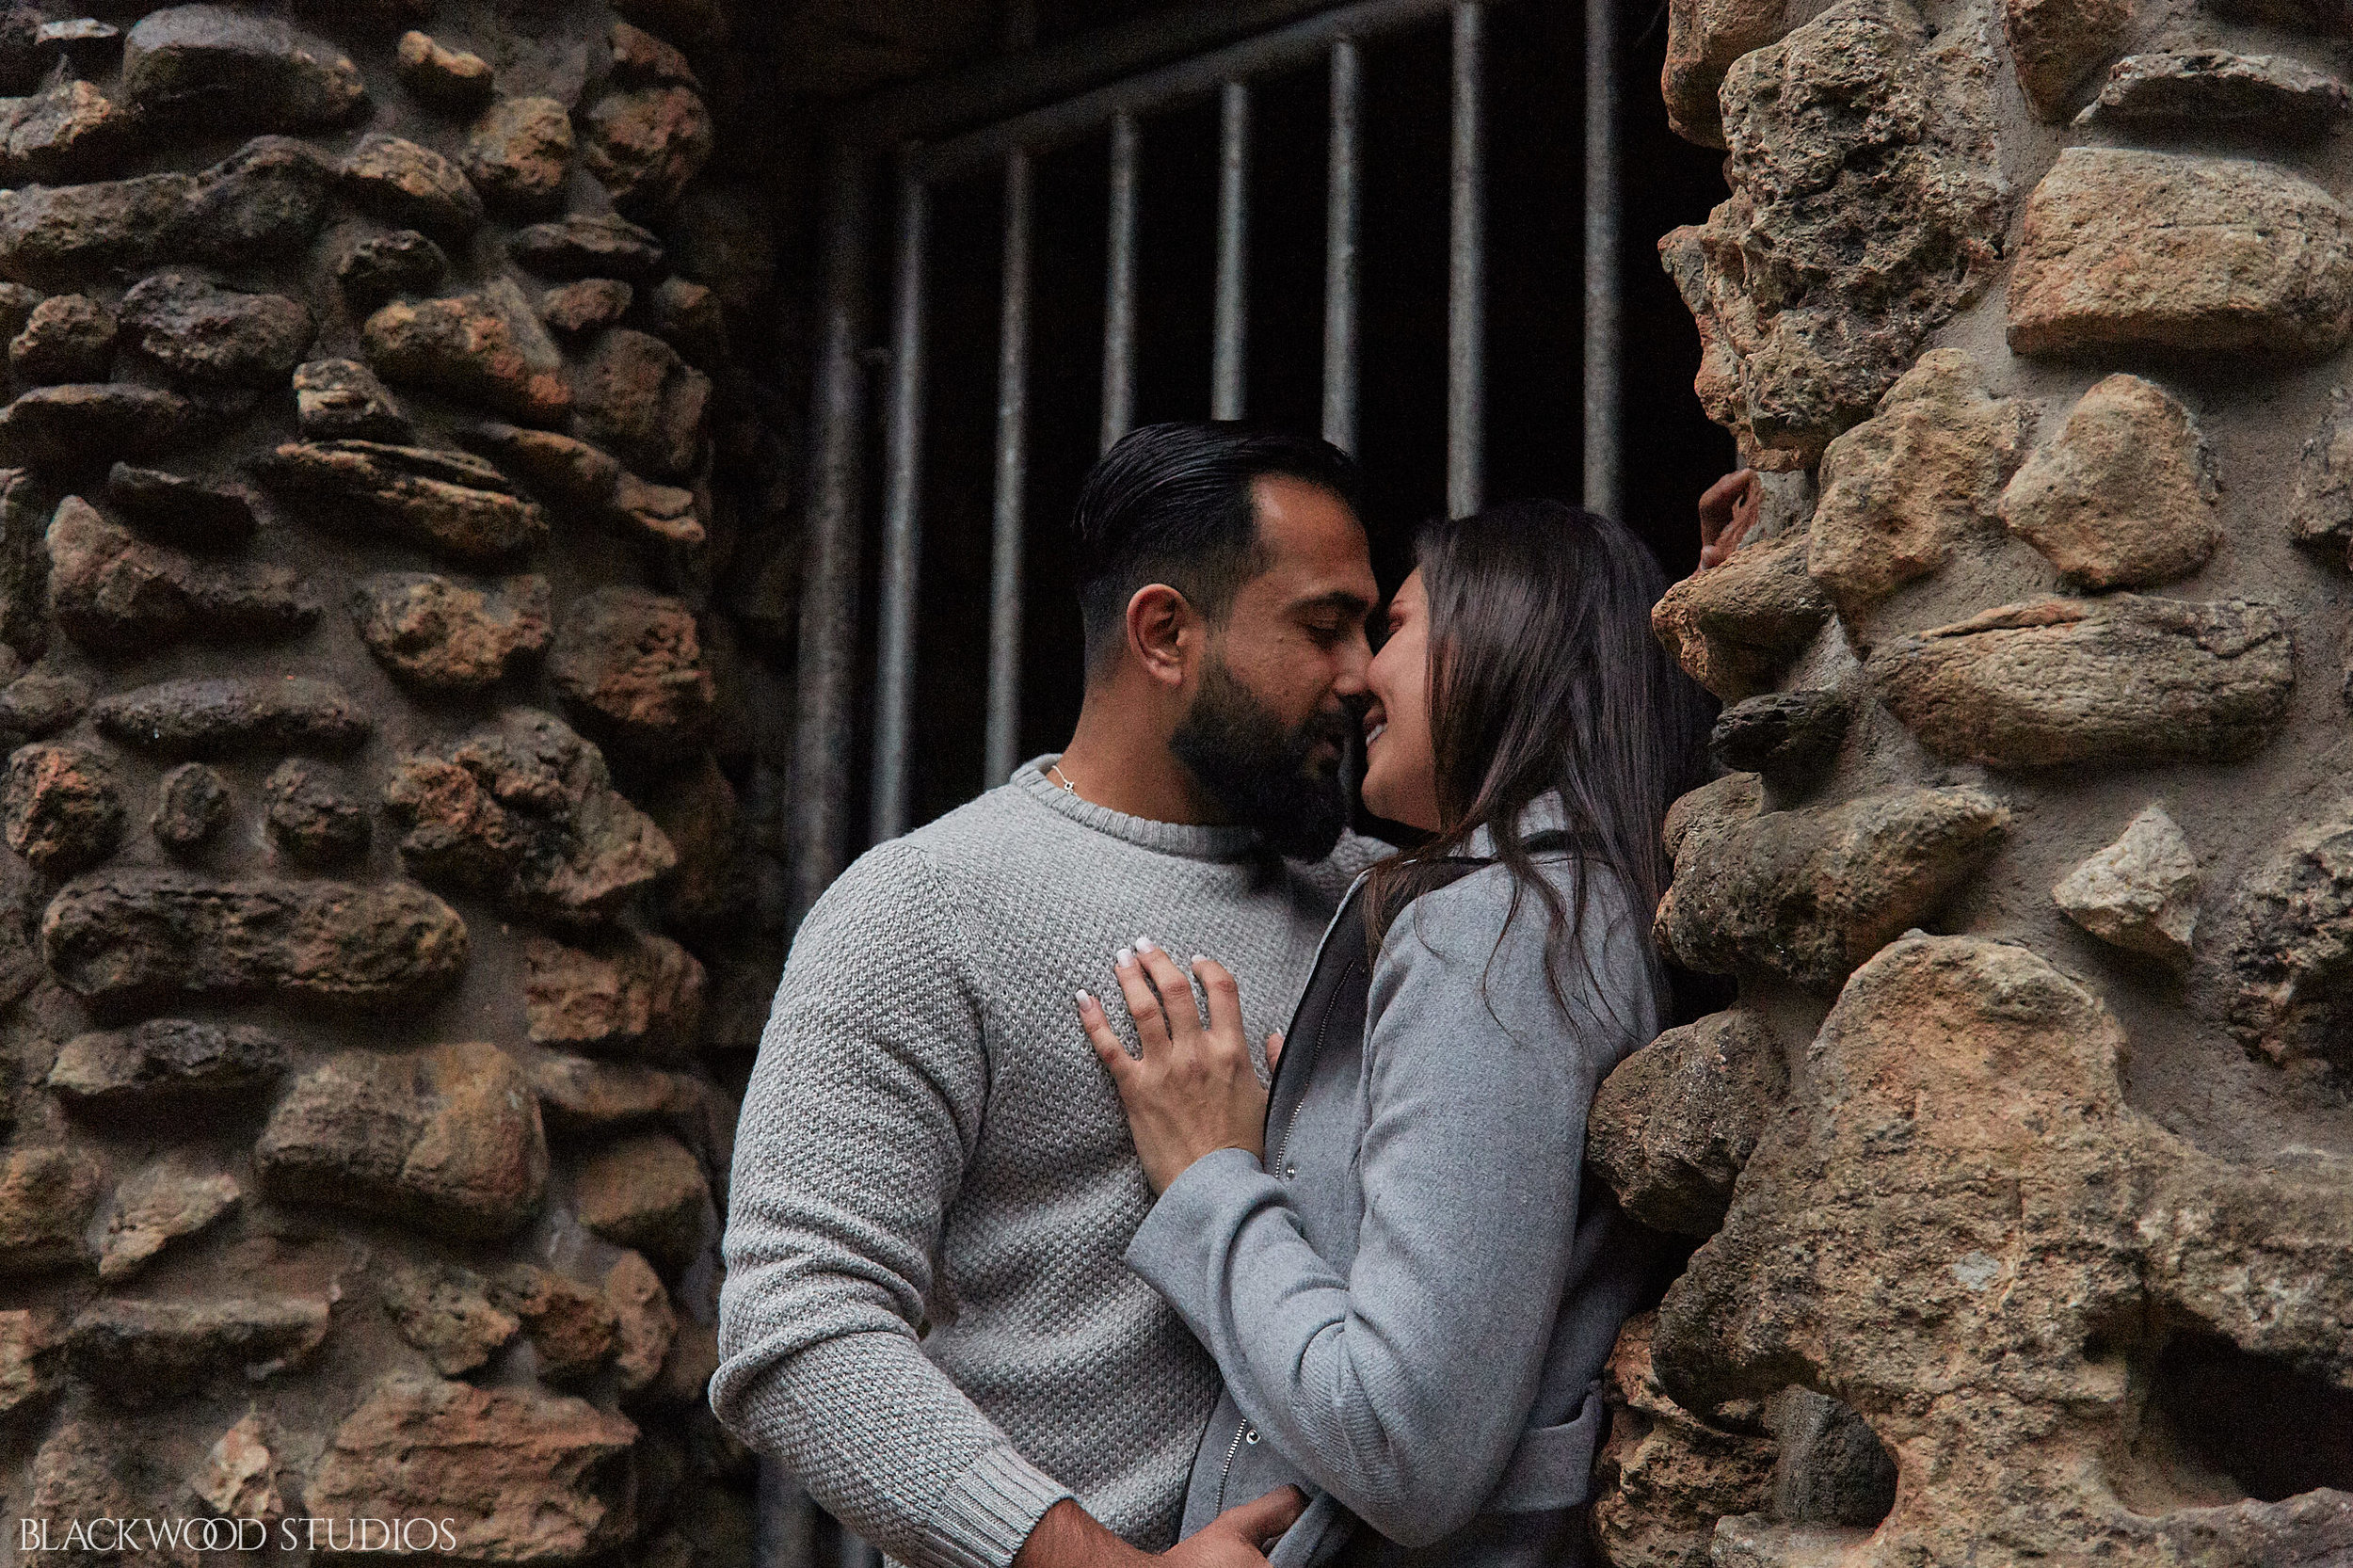 Blackwood-Studios-20181028182046-Farah-and-Zain-Engagement-photography-Belfountain-Conservation-Area-Caledon-Ontario.jpg